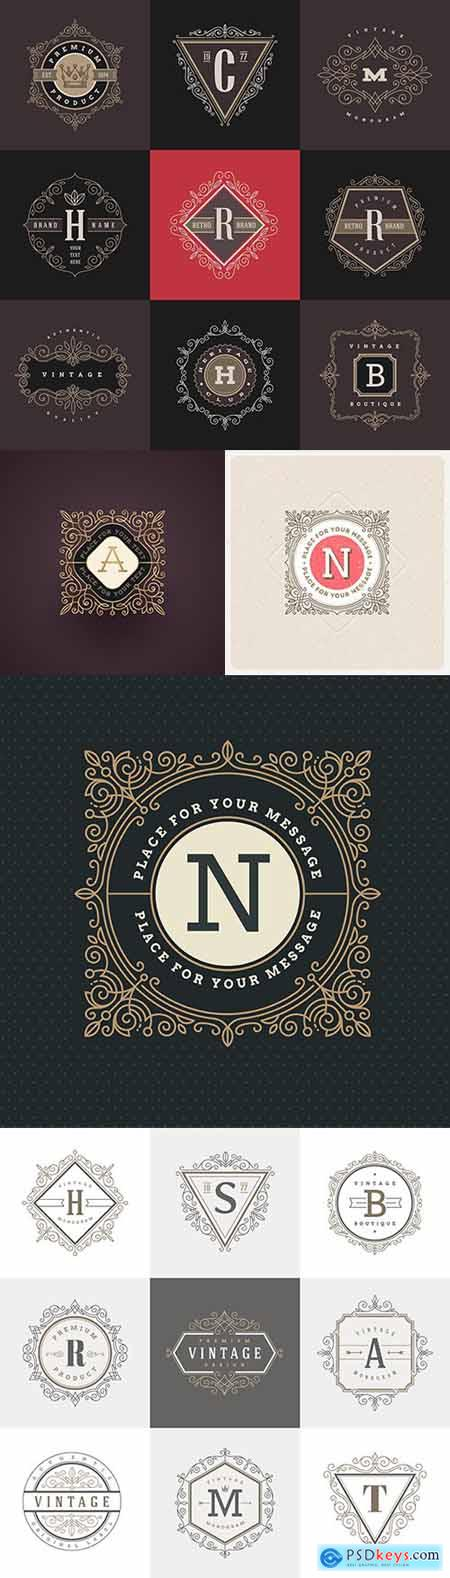 Monogram vintage calligraphic decoration emblem design